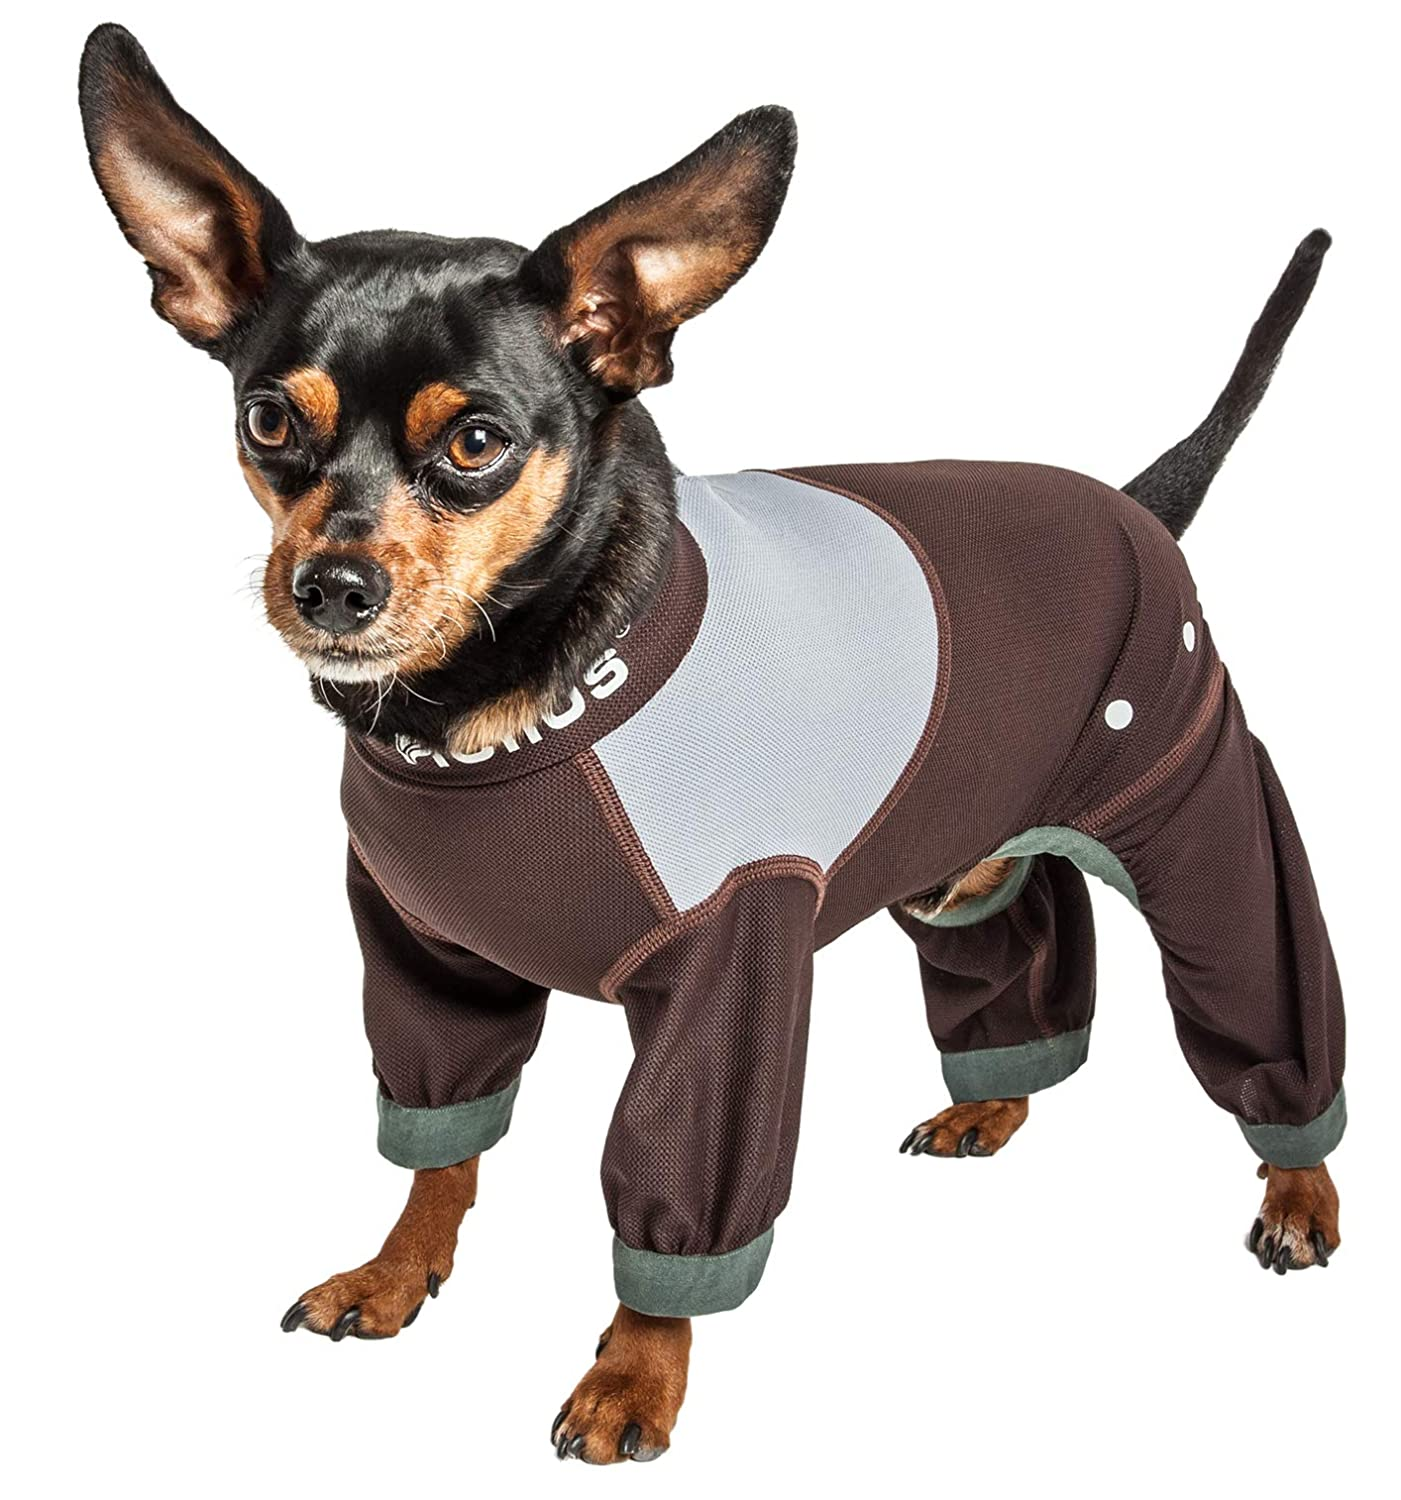 Dog Helios Tail Runner Lightweight 4-Way-Stretch Breathable Full Bodied Performance Dog Track Suit